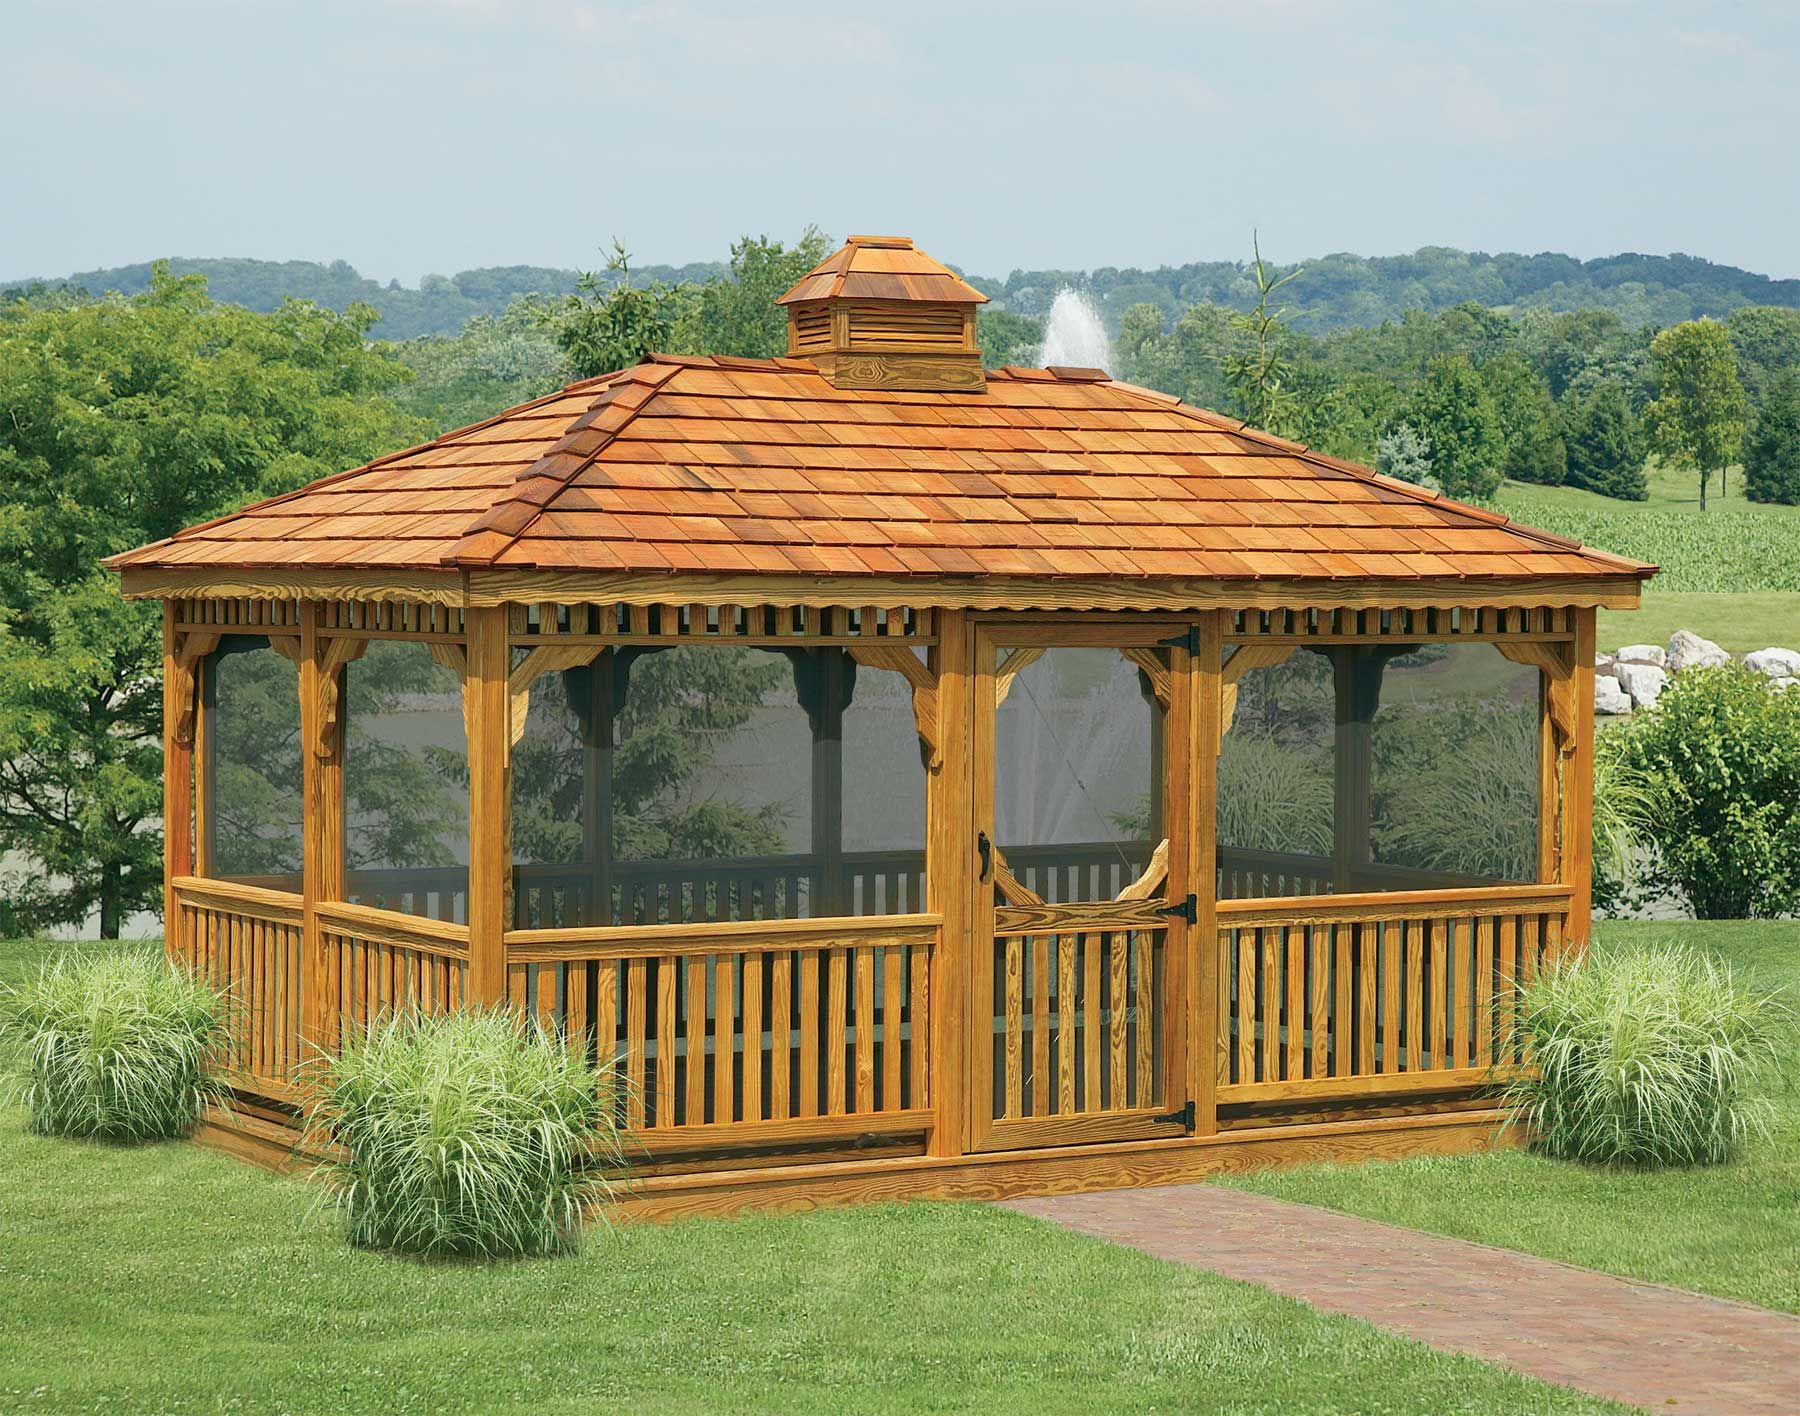 In vogue single roof rectangle enclosed gazebo with wooden fencing as decorate outdoor gardening - Gardens central gazebos designs placement ideas ...